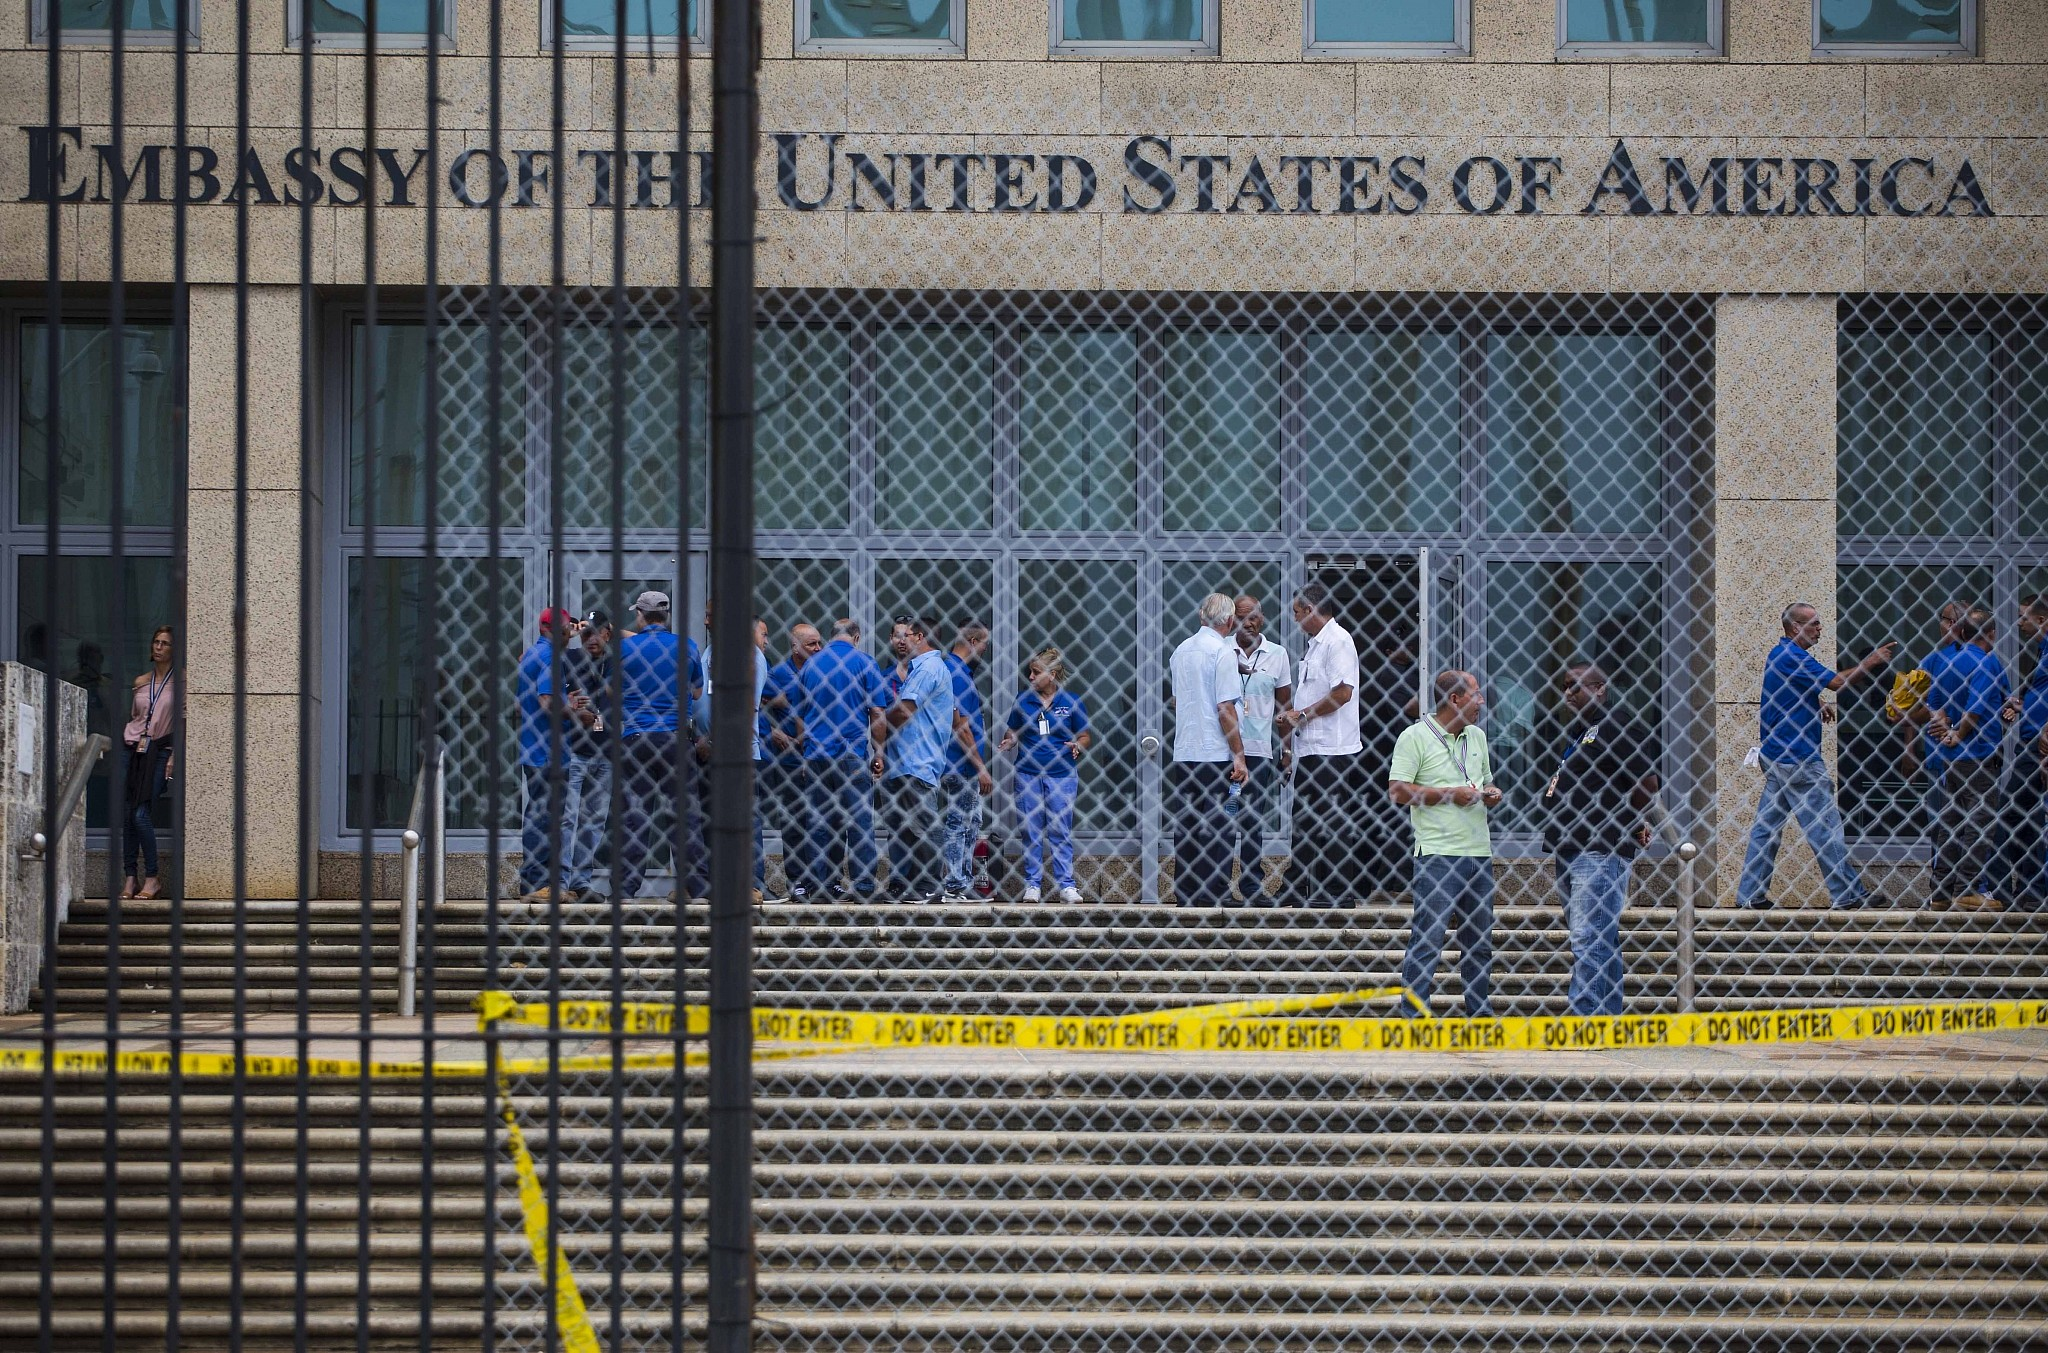 U.S. cuts embassy staff in Cuba after mystery attacks